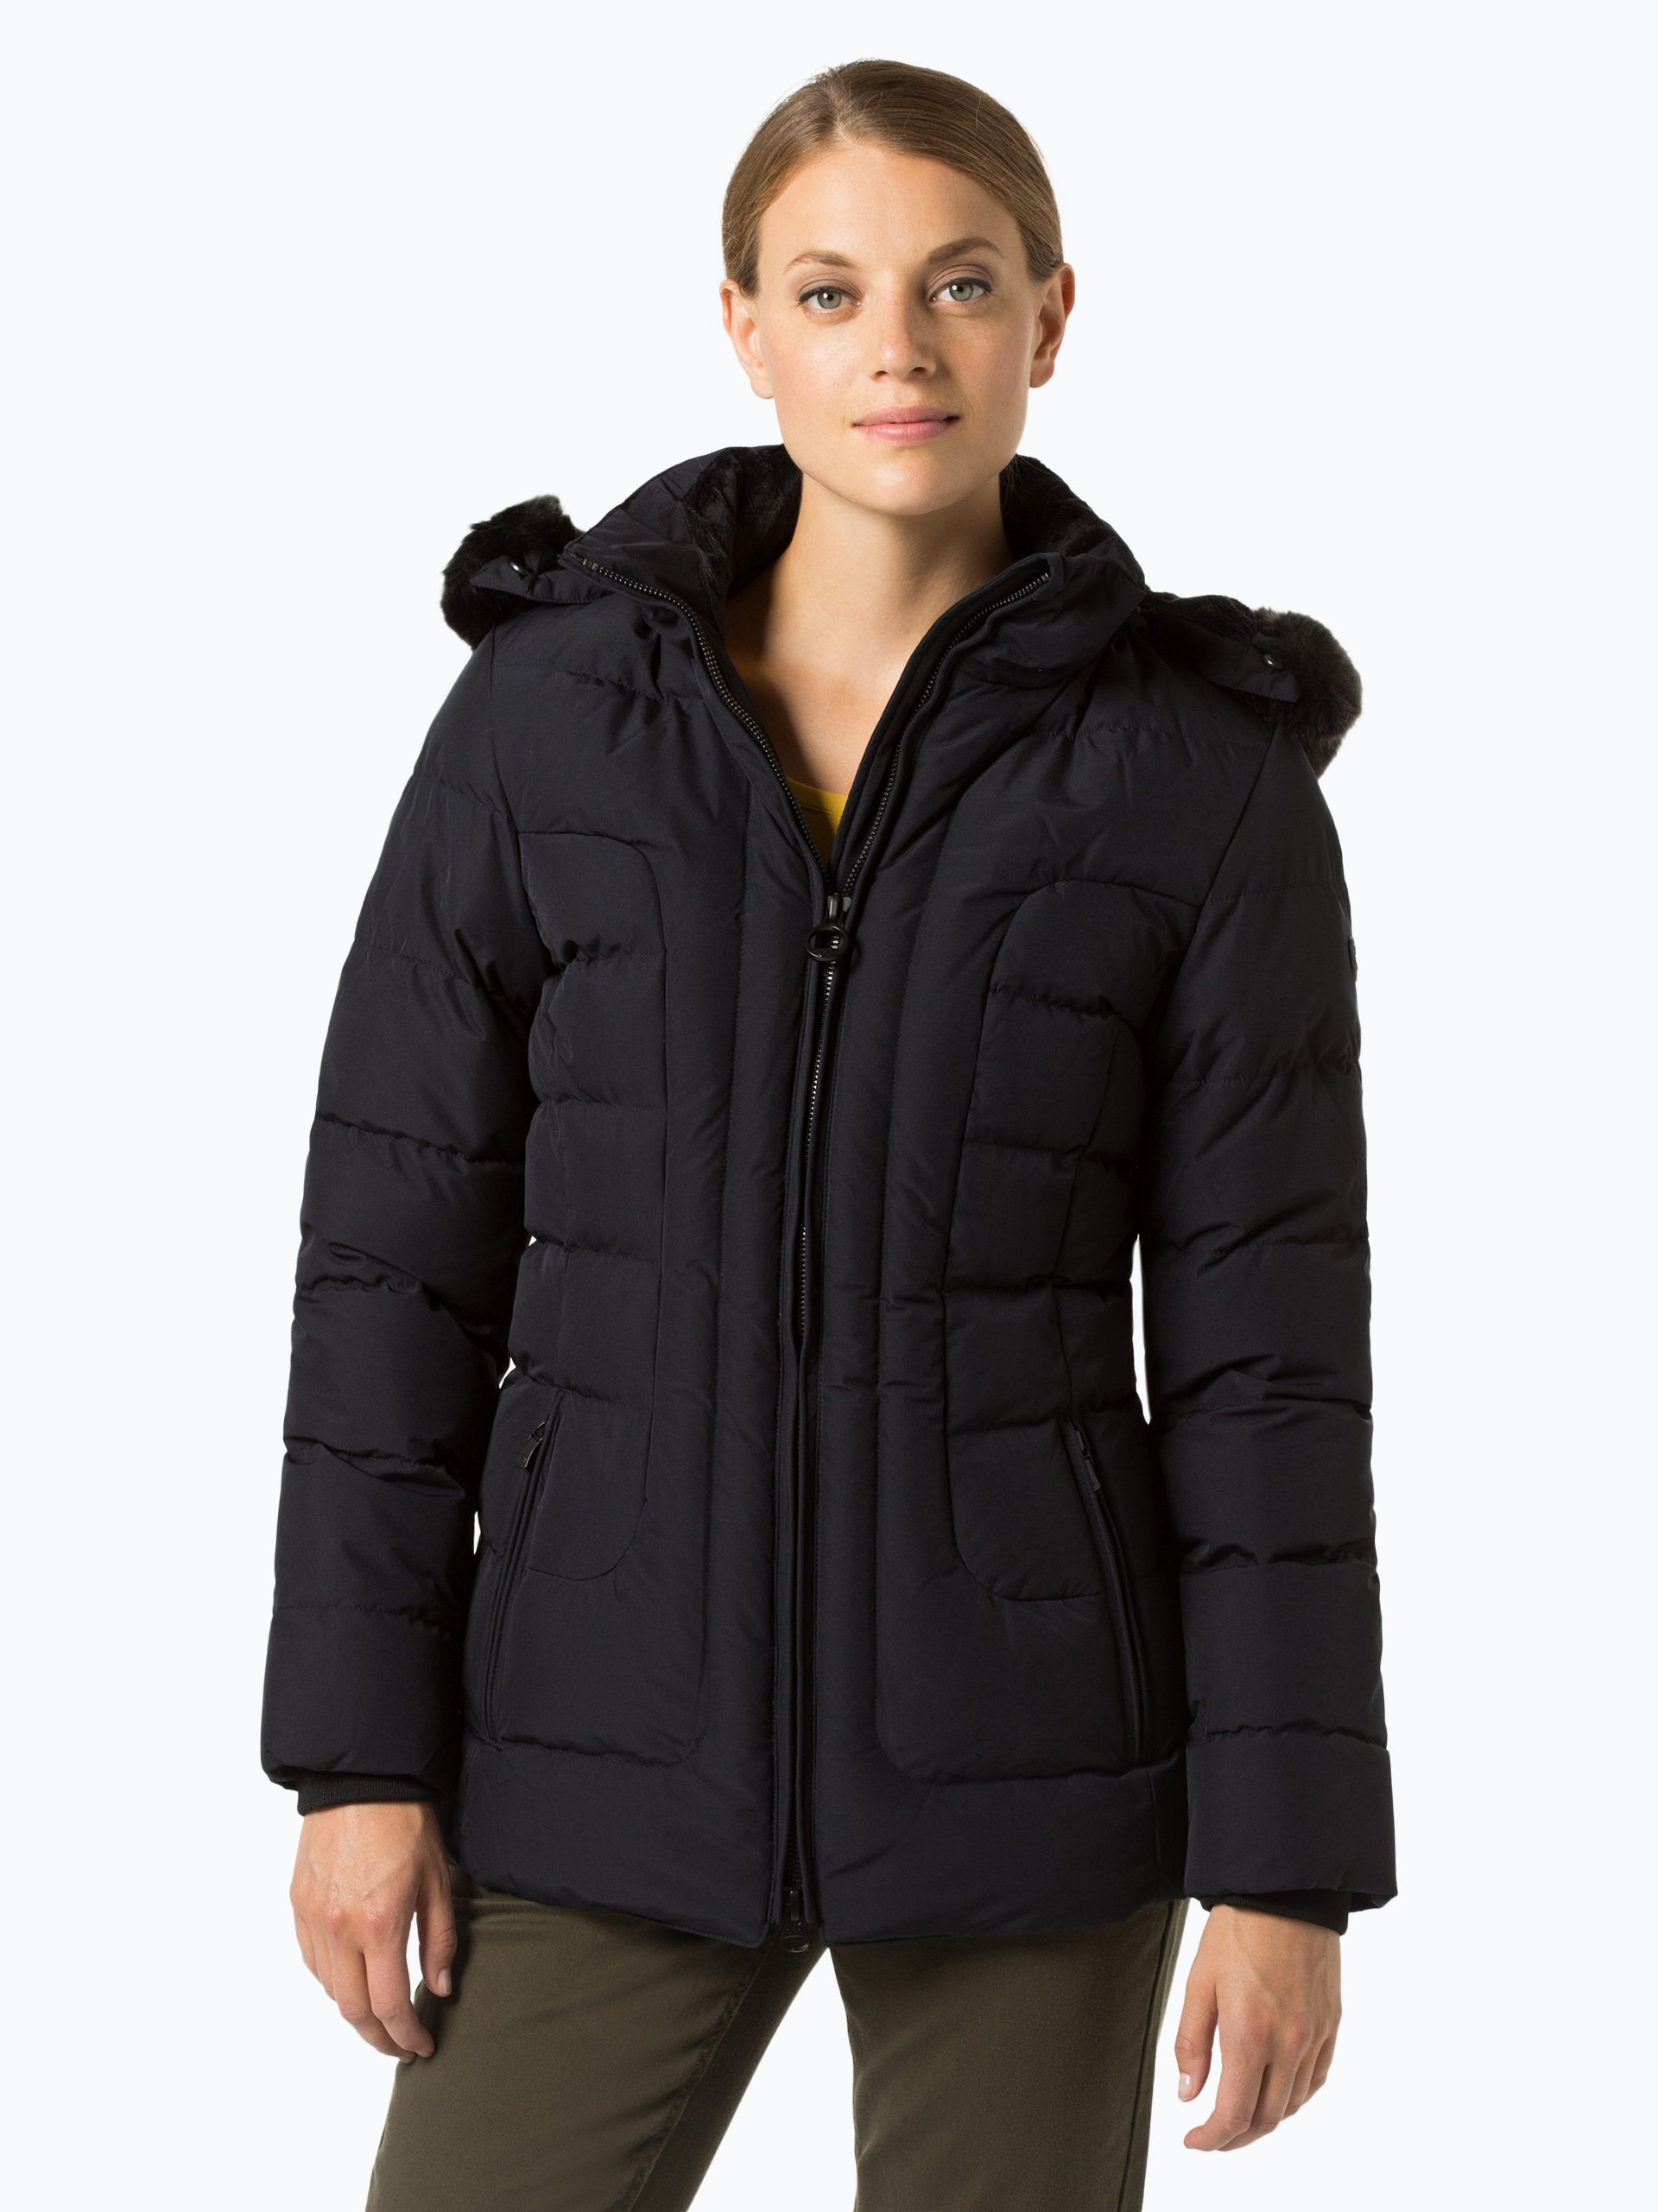 Wellensteyn Damen Funktionsjacke - Belvedere Medium